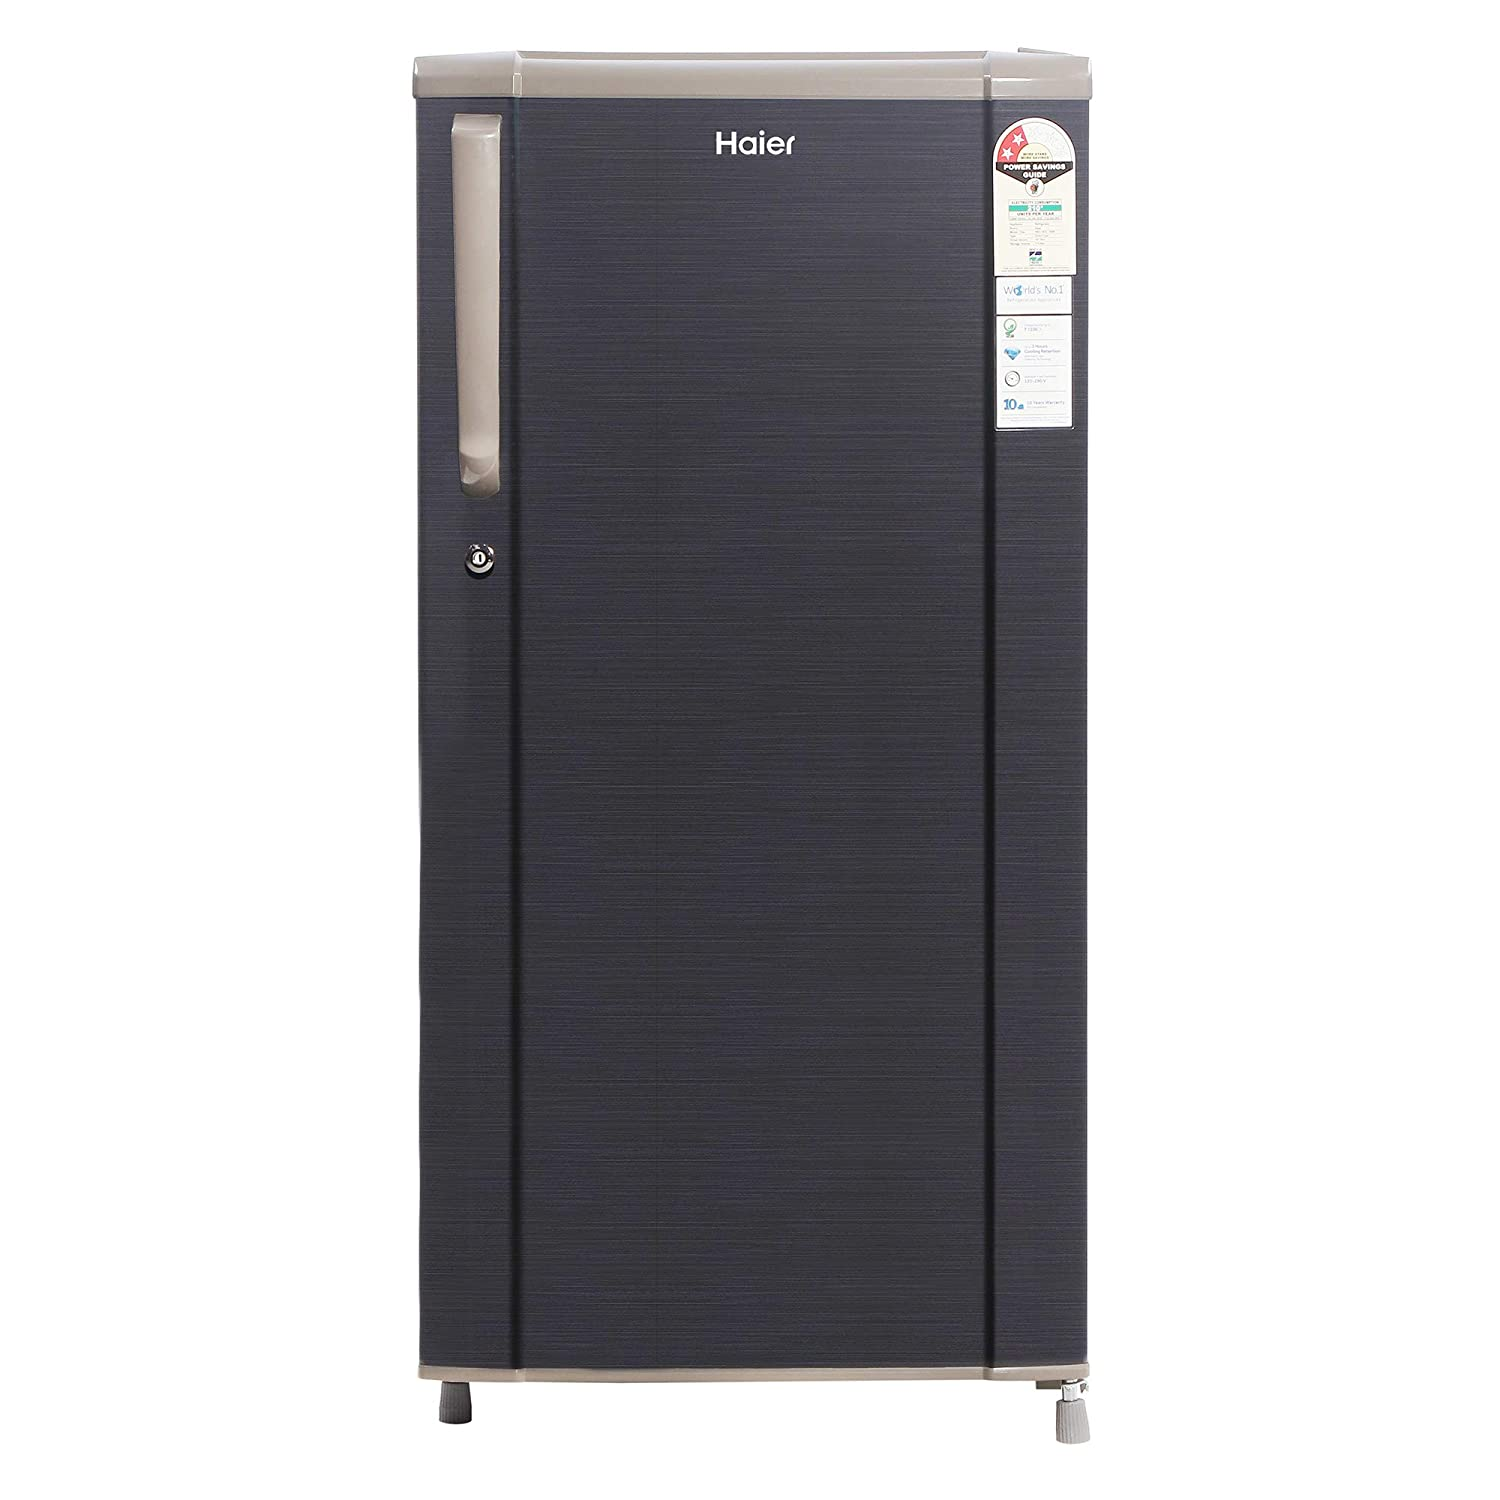 Direct Cool Refrigerator: Economical and requires manual defrosting 181 Ltr - Suitable for families with 2 to 3 members 2 Star: energy efficiency 1 Year on Product & 10 year warrantry on compressor Compressor Type :Non Inverter This new Direct Cool Refrigerator by Haier comes with a 10 years of warrany on compressor, 1 HIT (Hour Icing Technology), Base Drawer which gives you more Space , Toughened Glass Shelves & stabilizer free operation with operating range of 135-290V that protects the compressor from power fluctuations.